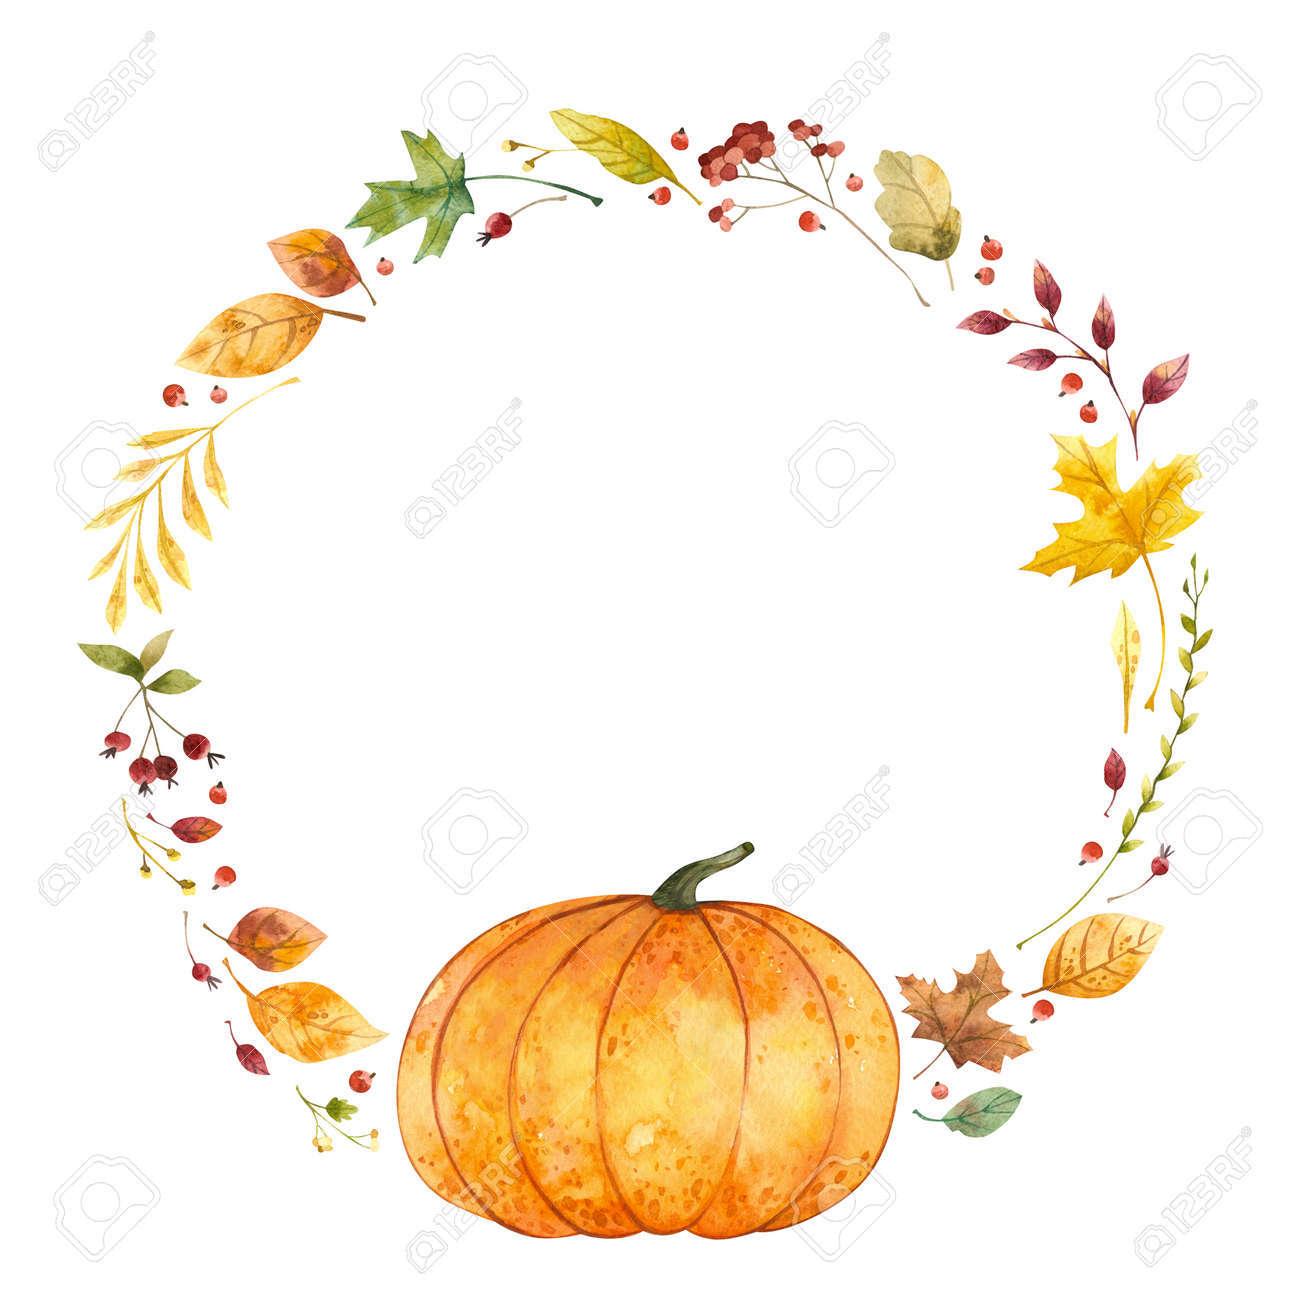 Watercolor wreath with pumpkin and fall leaves. Autumn, Thanksgiving Day. - 172490659